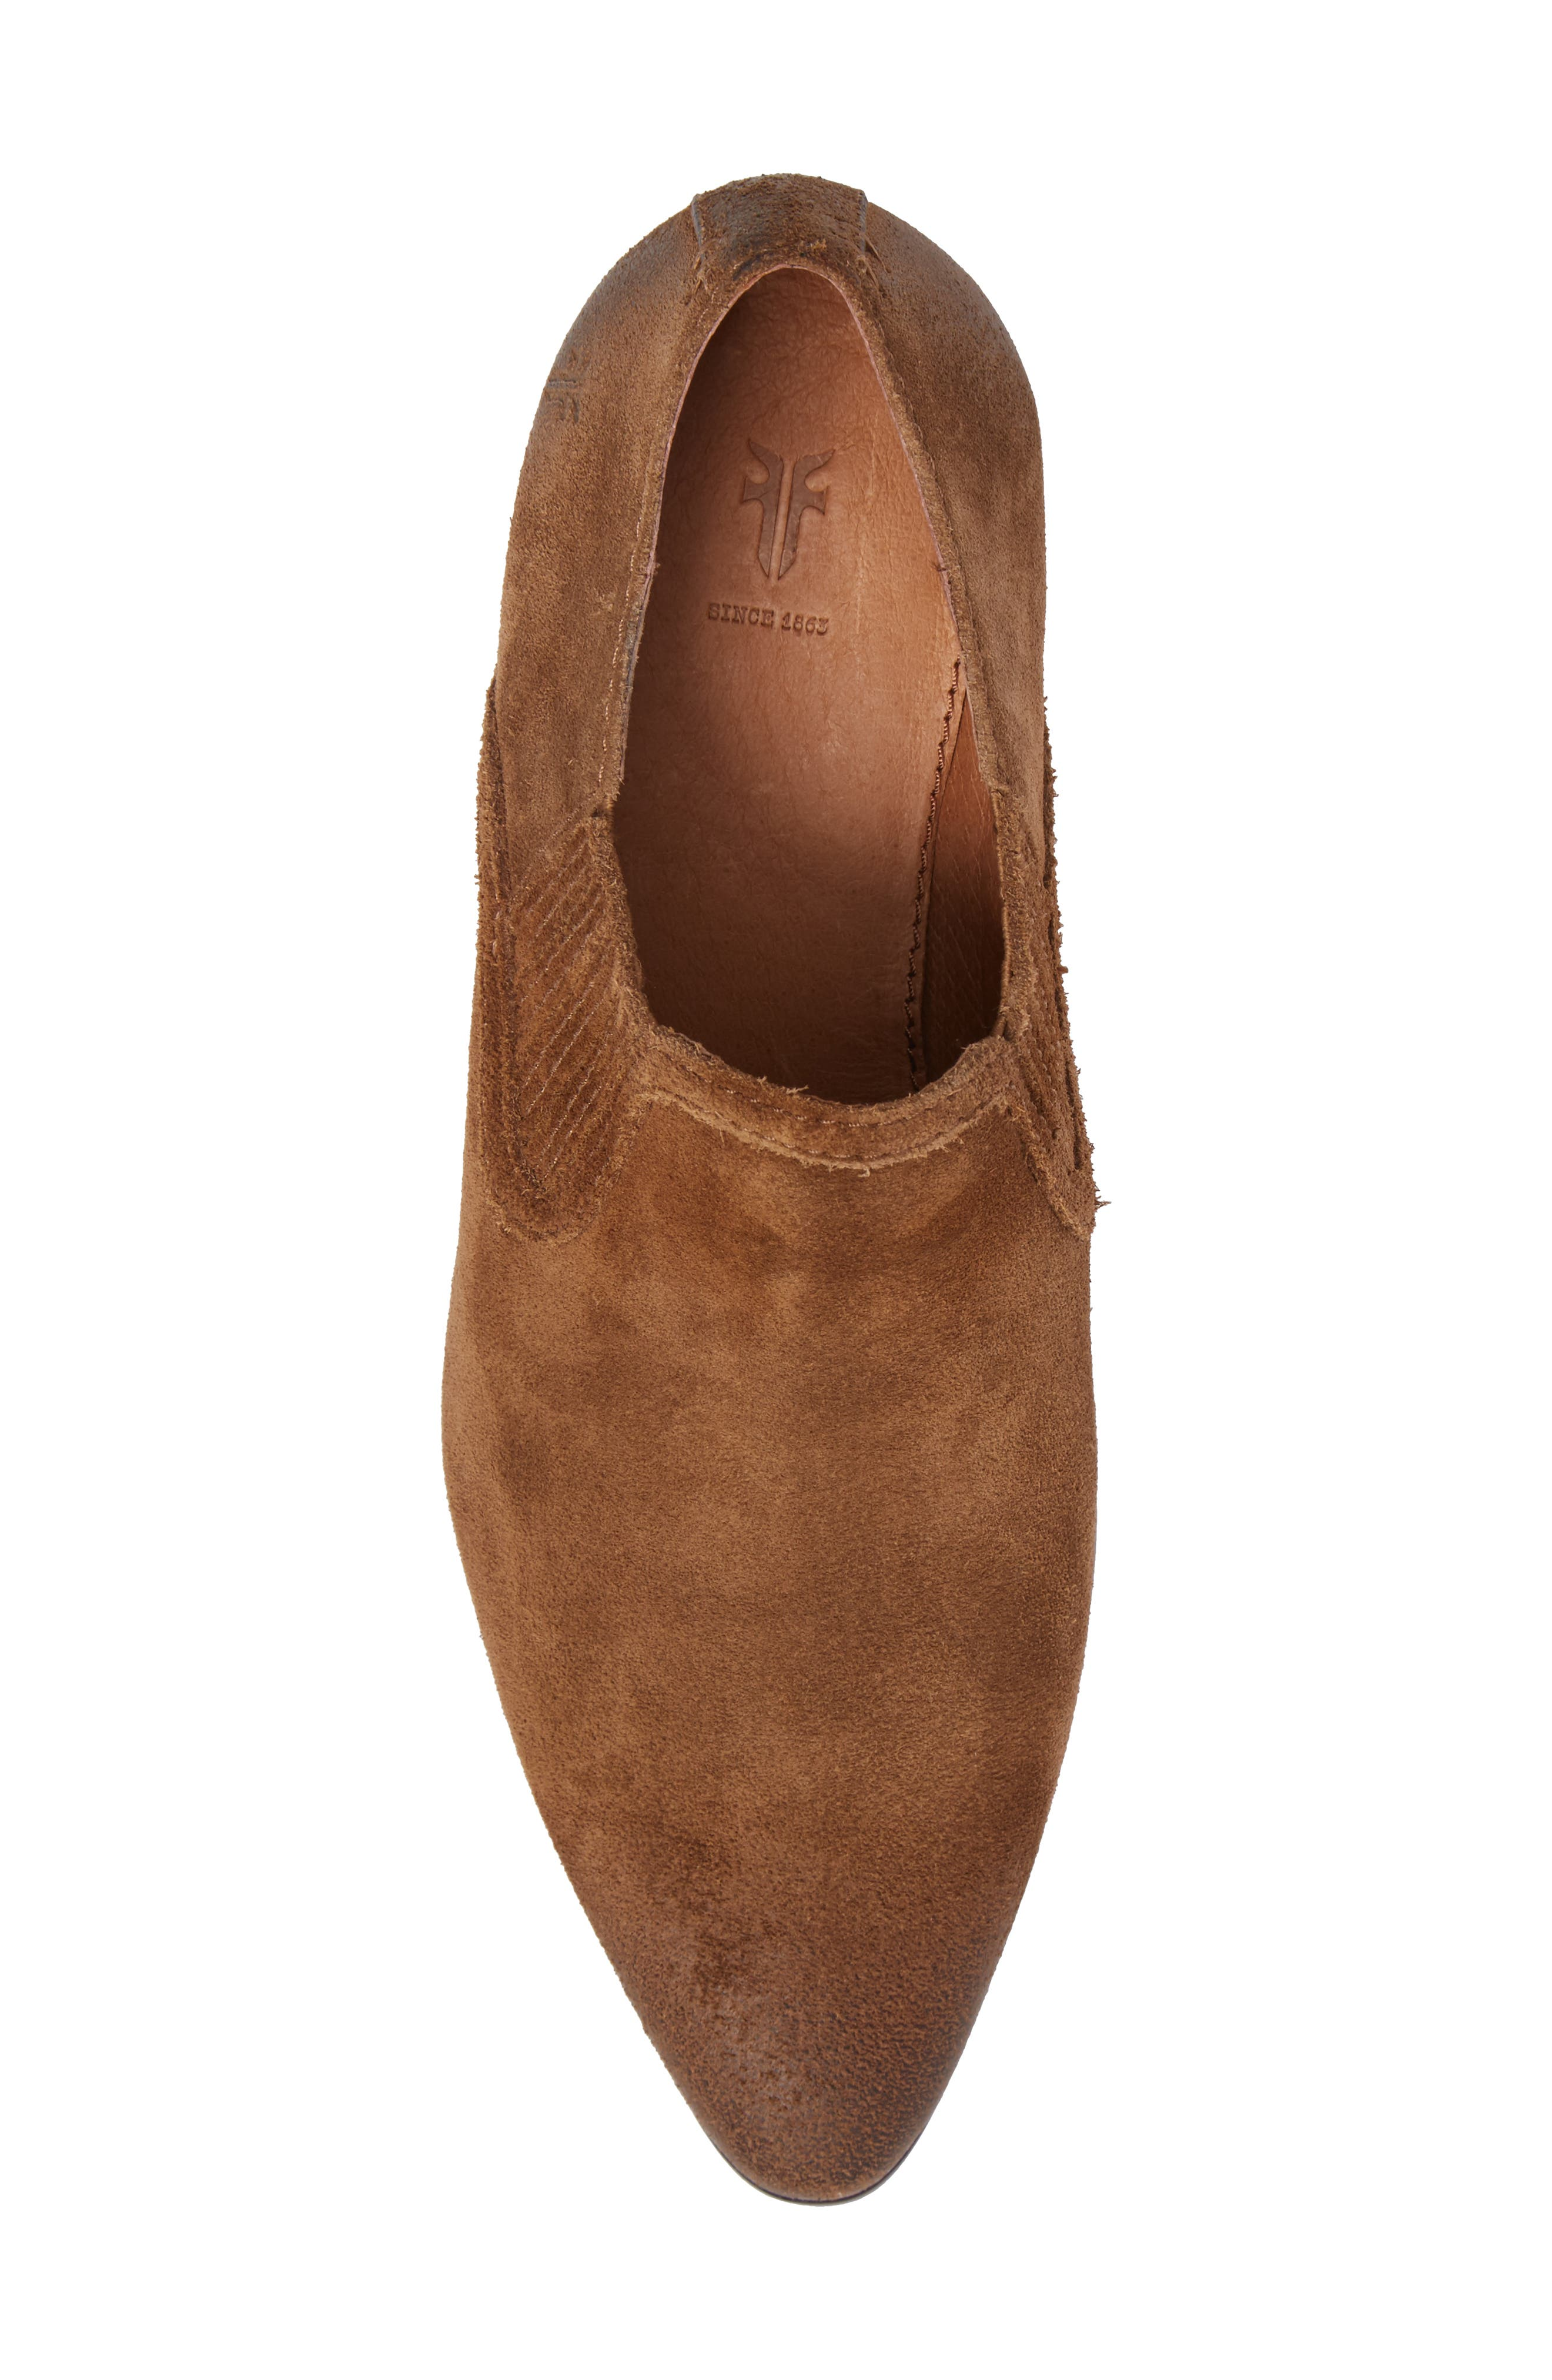 Eleanor Pointy Toe Bootie,                             Alternate thumbnail 5, color,                             Chestnut